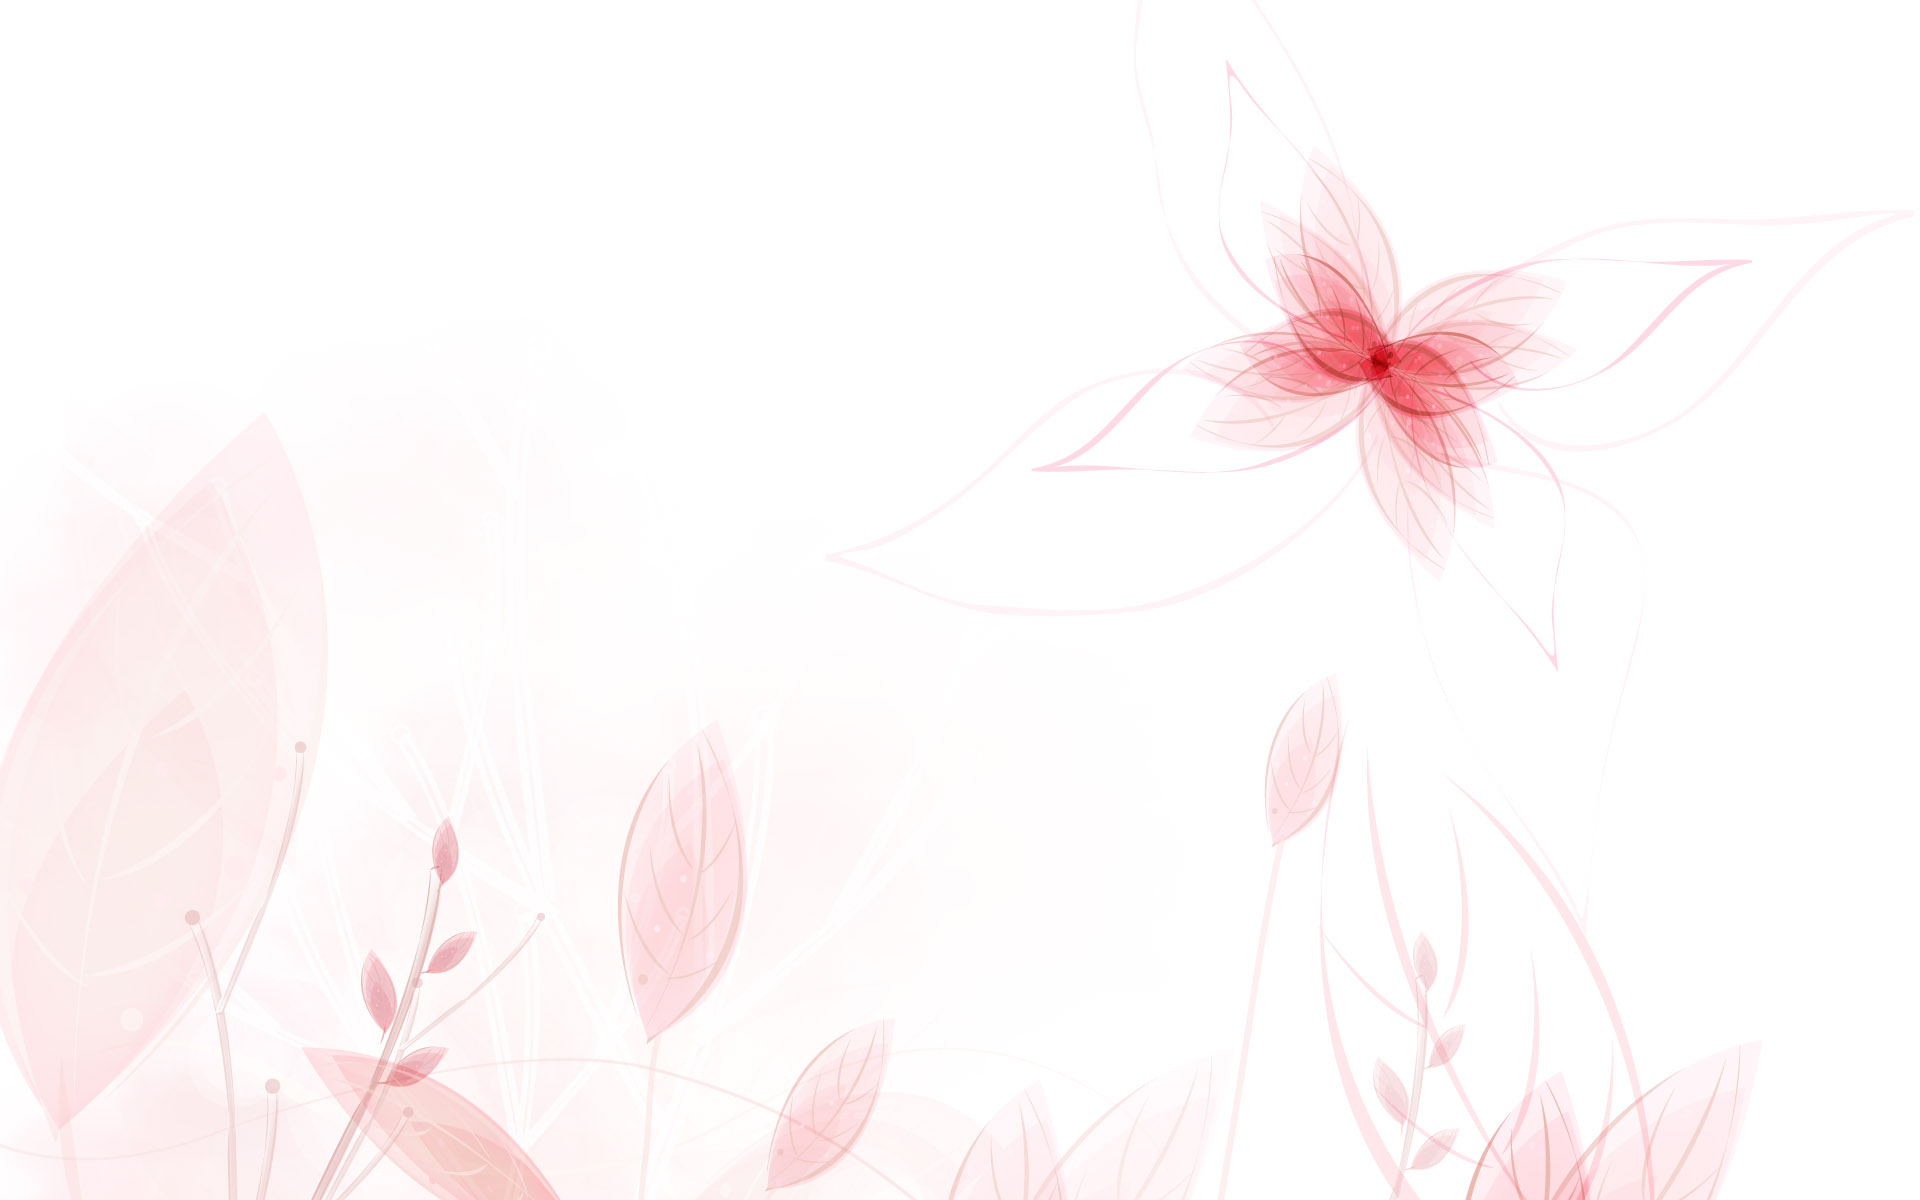 Background color 16518